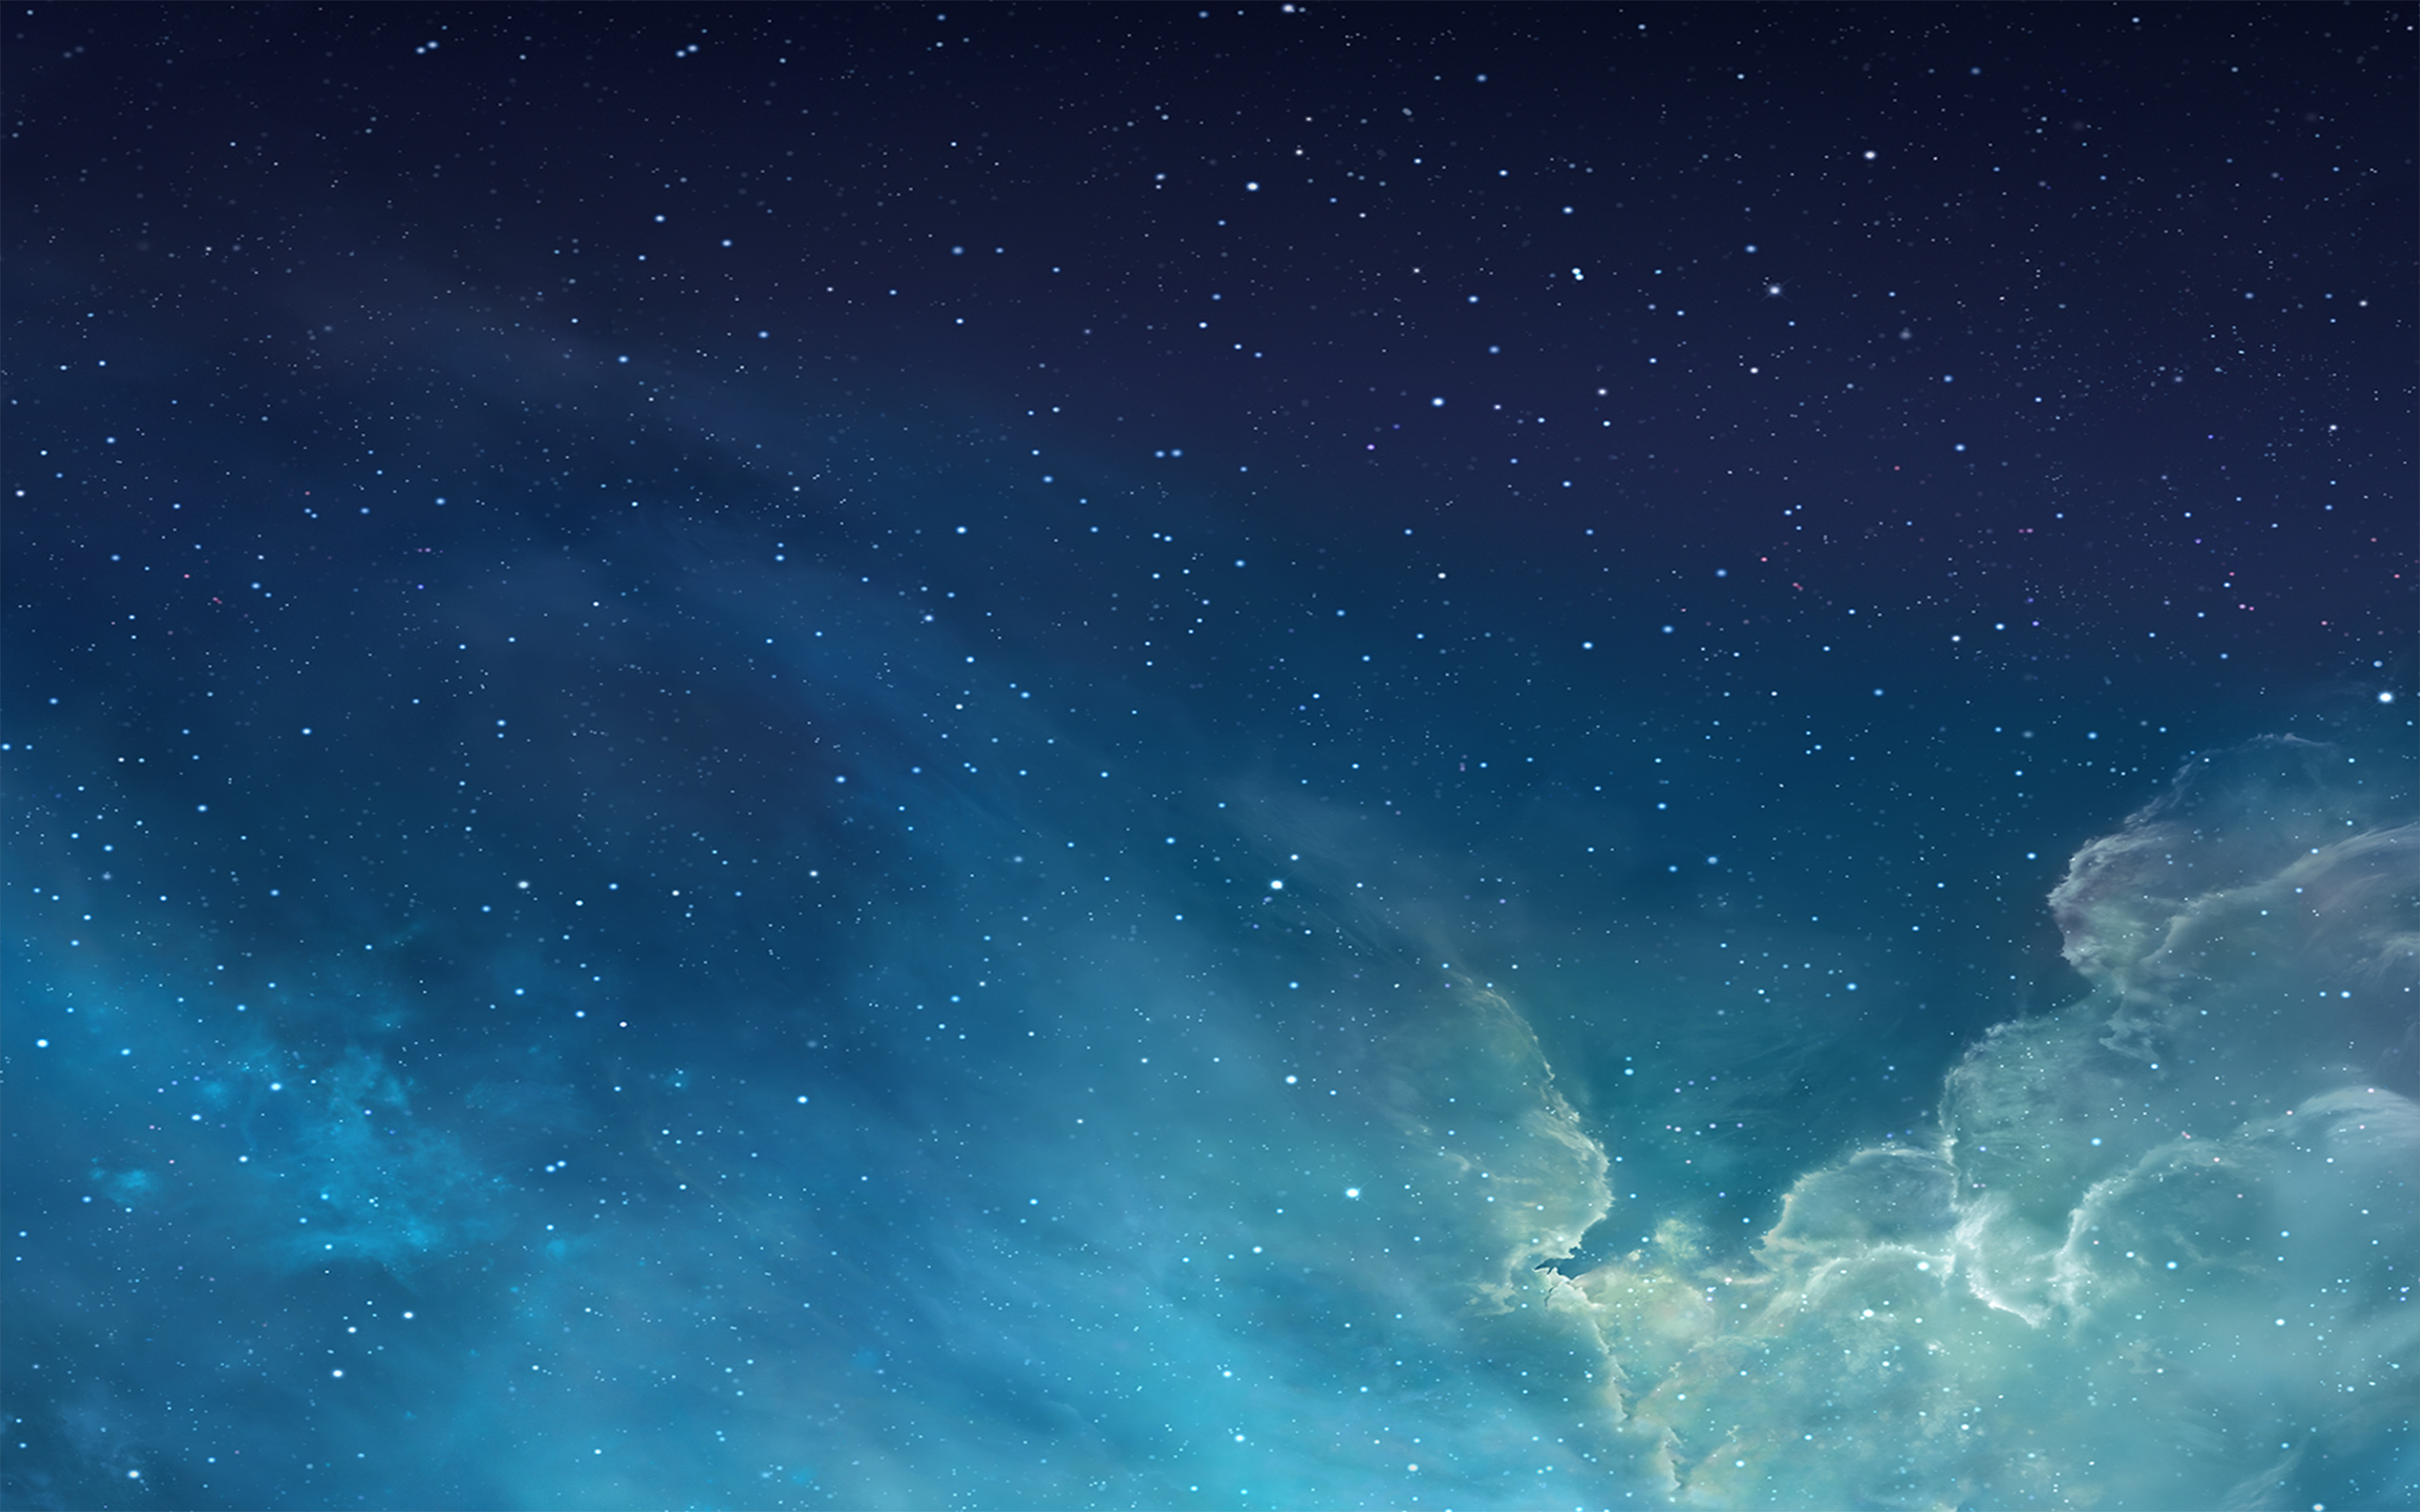 ios7desktopwallpaper